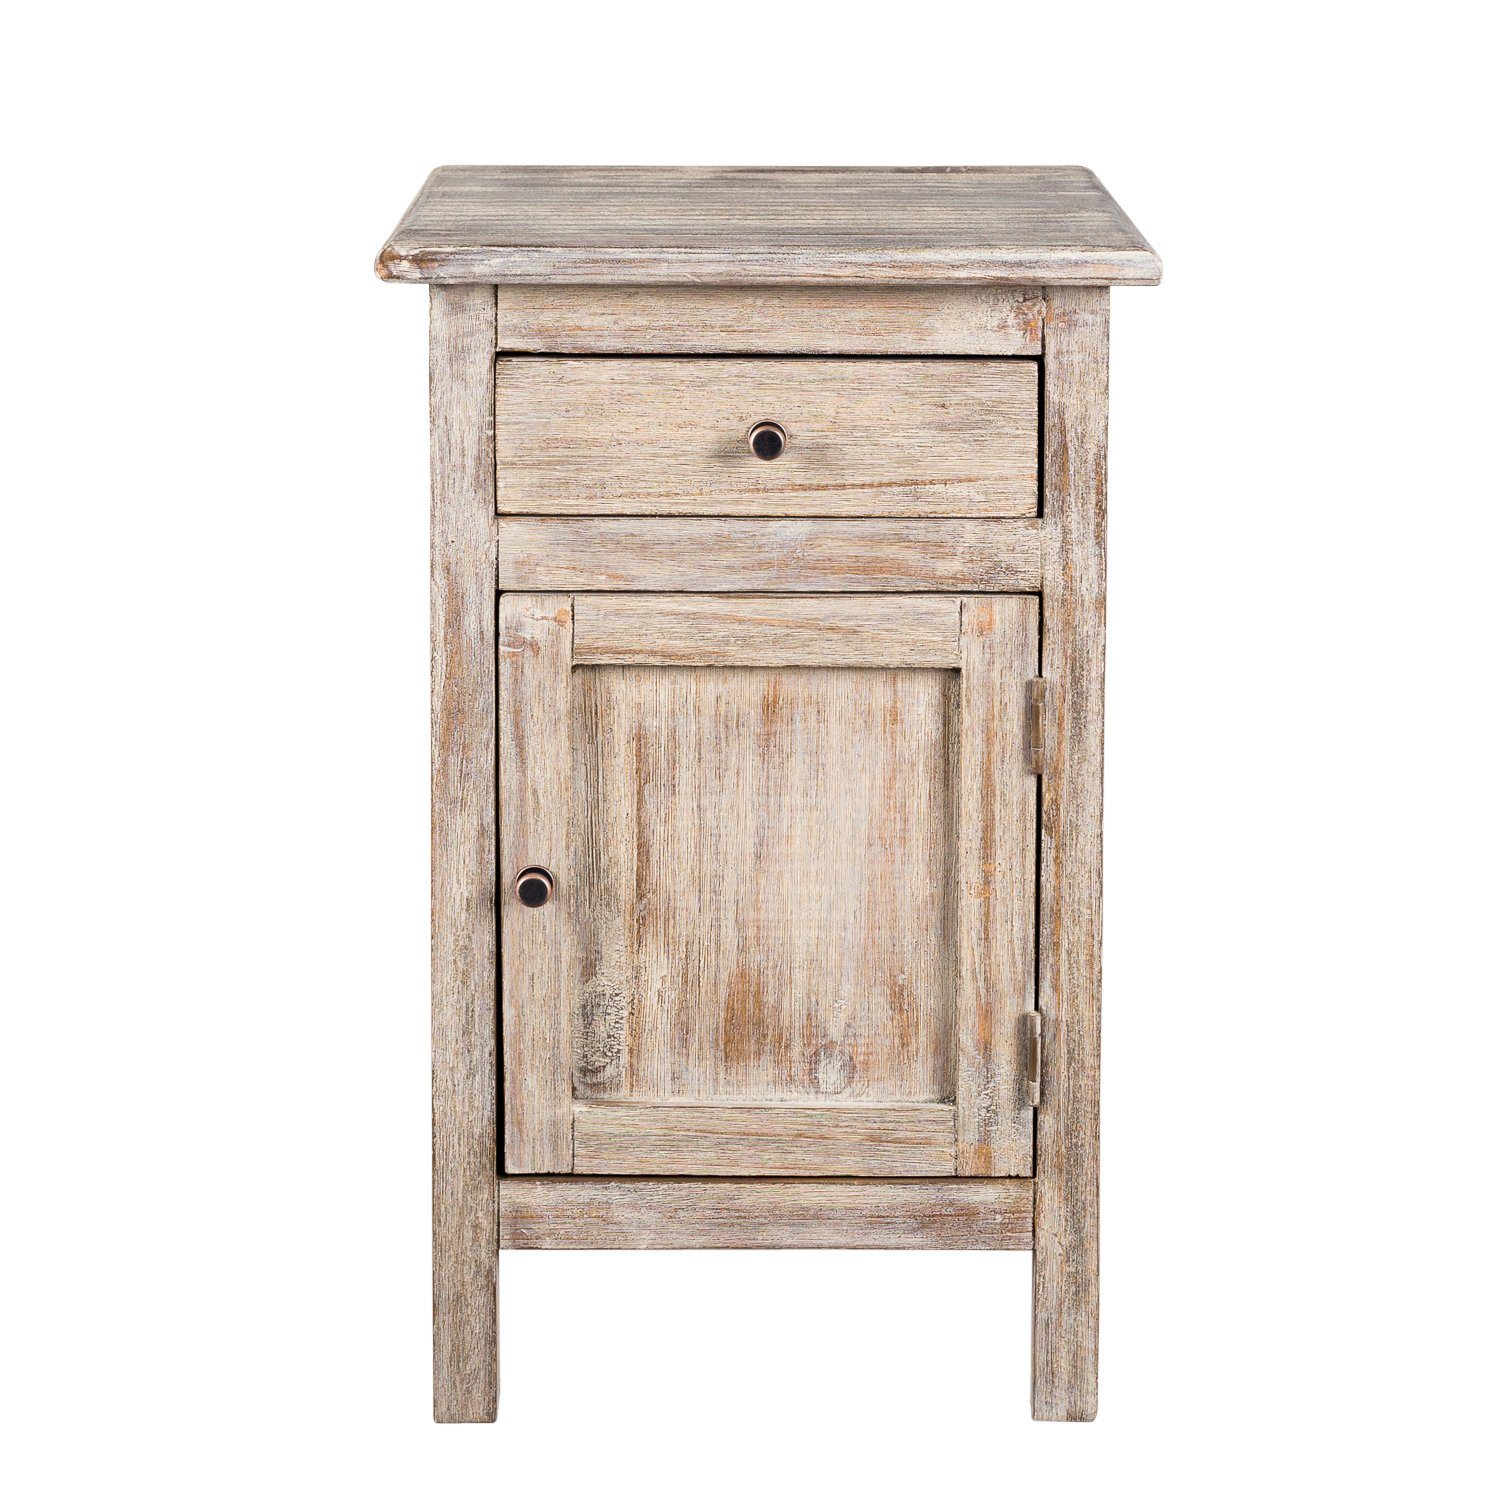 Handmade Molina 1-Drawer Off White Wood End Table